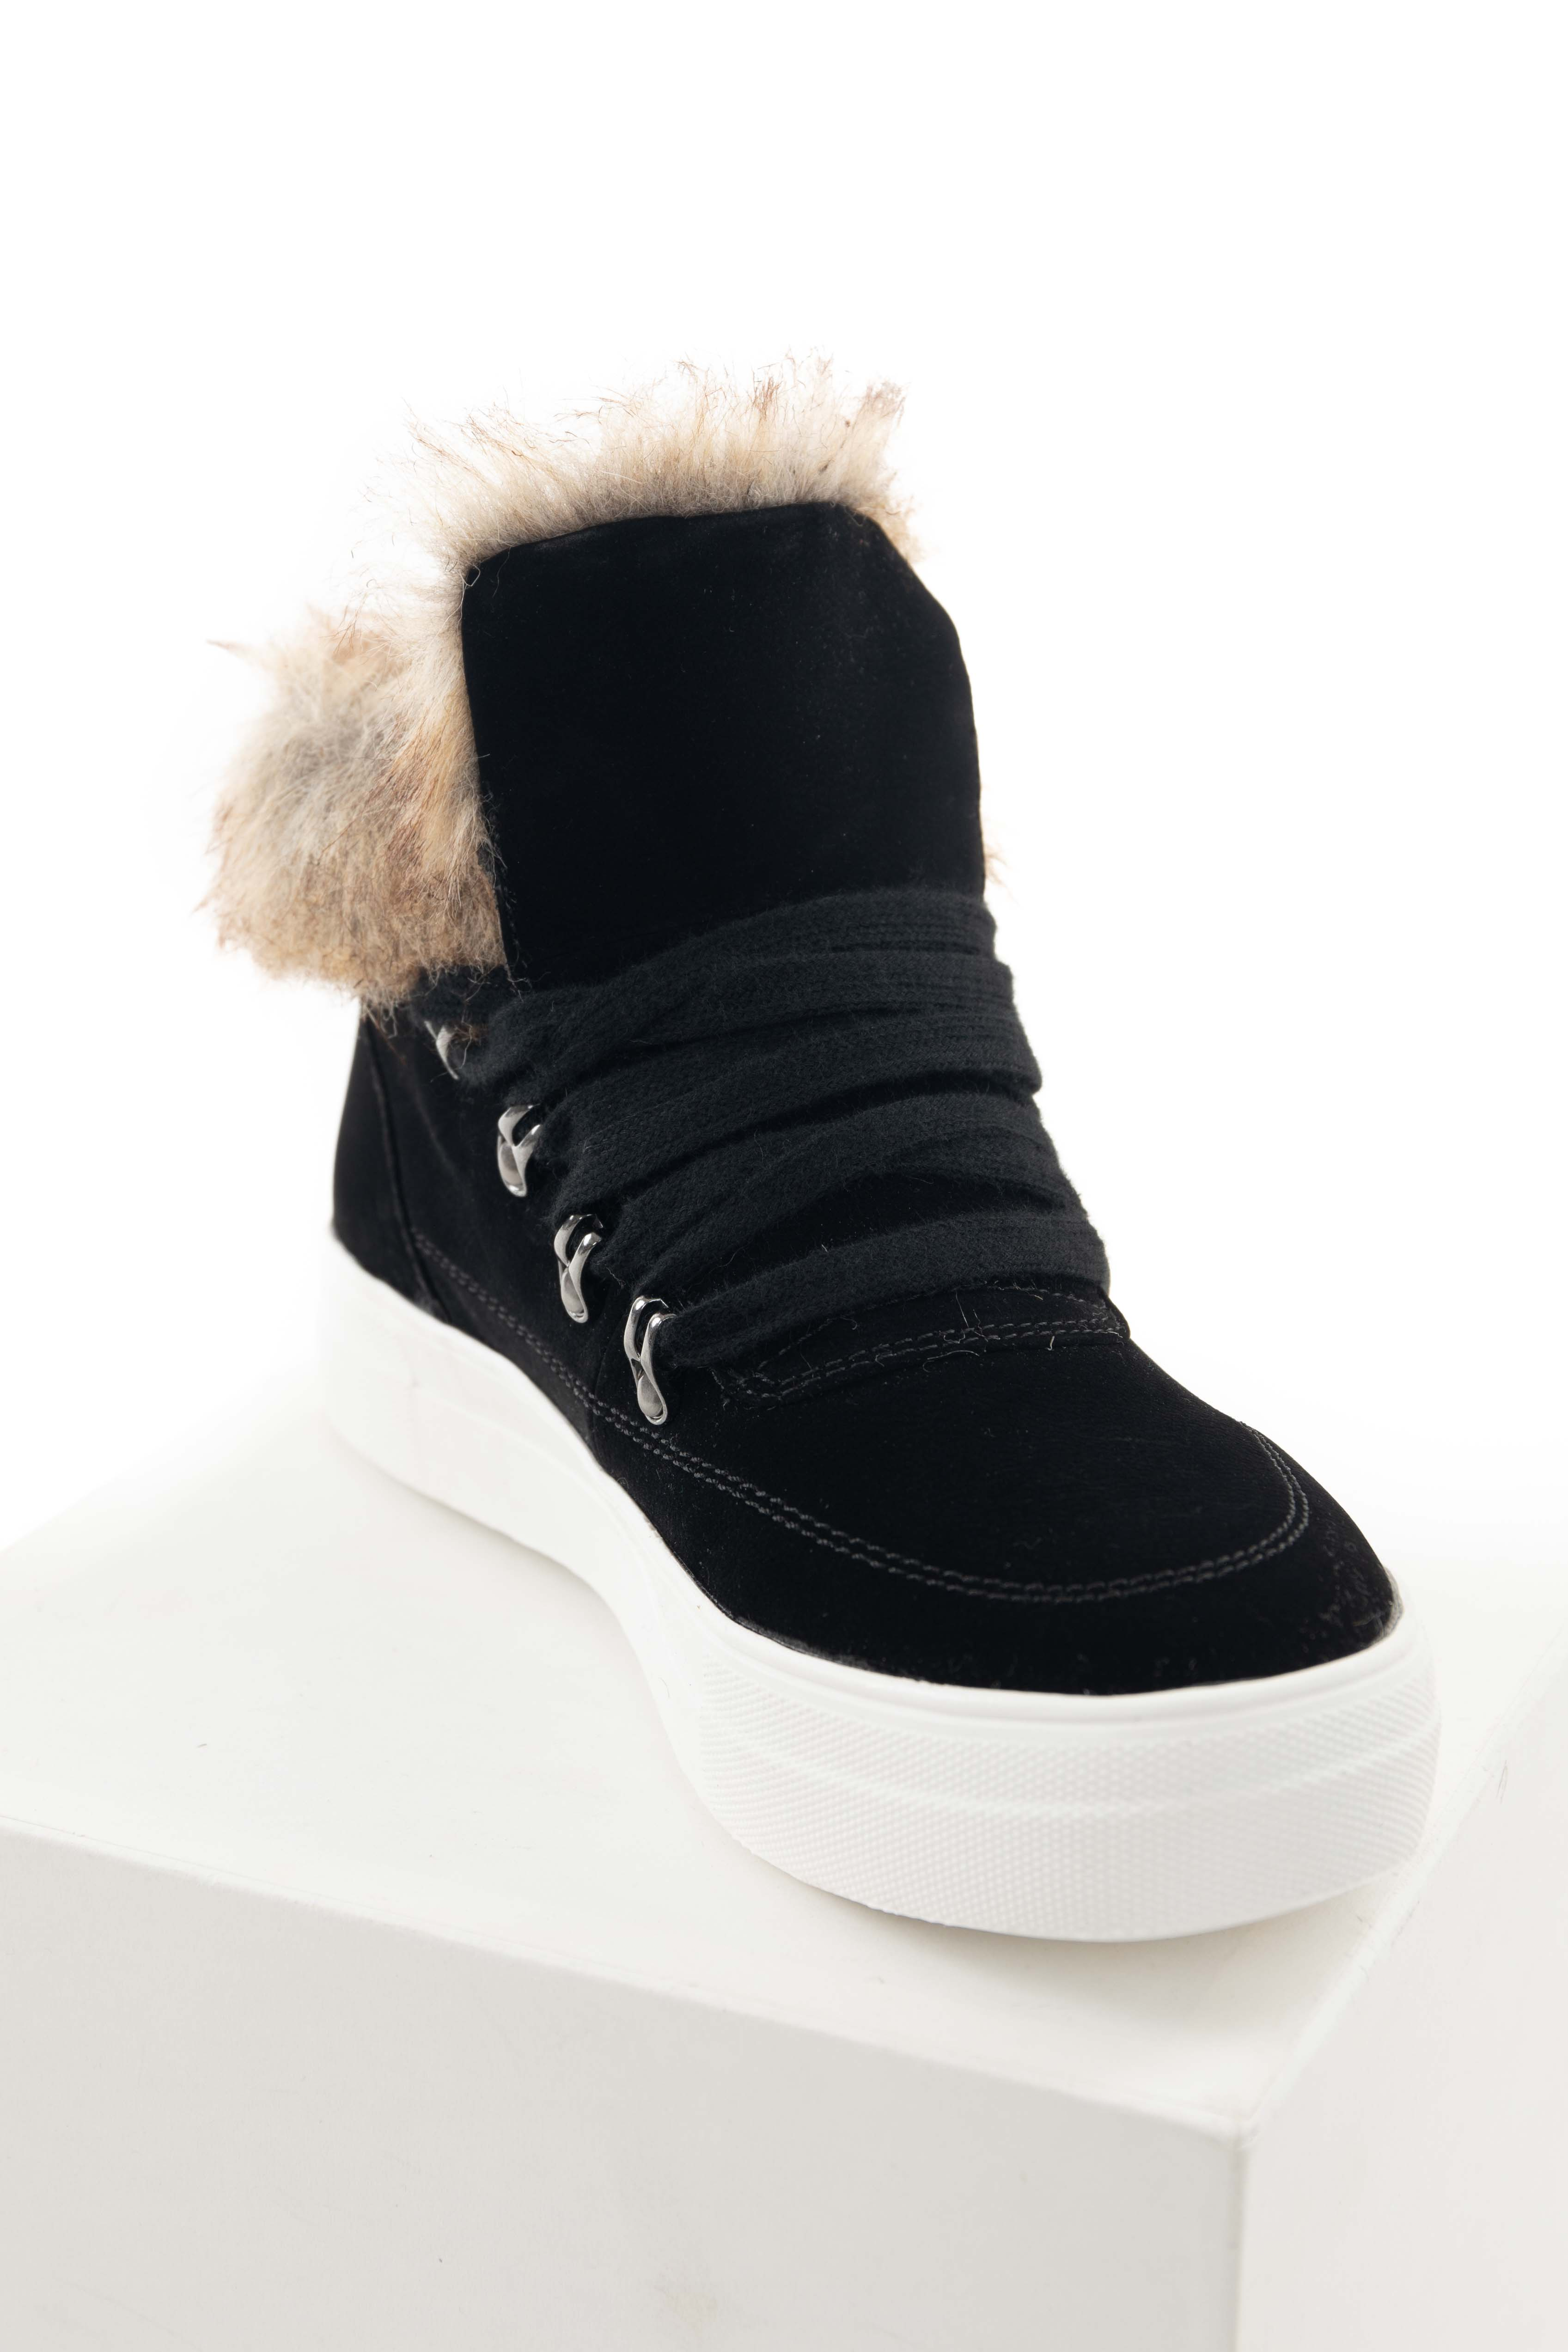 Black Lace Up Sneakers with Faux Fur Trim